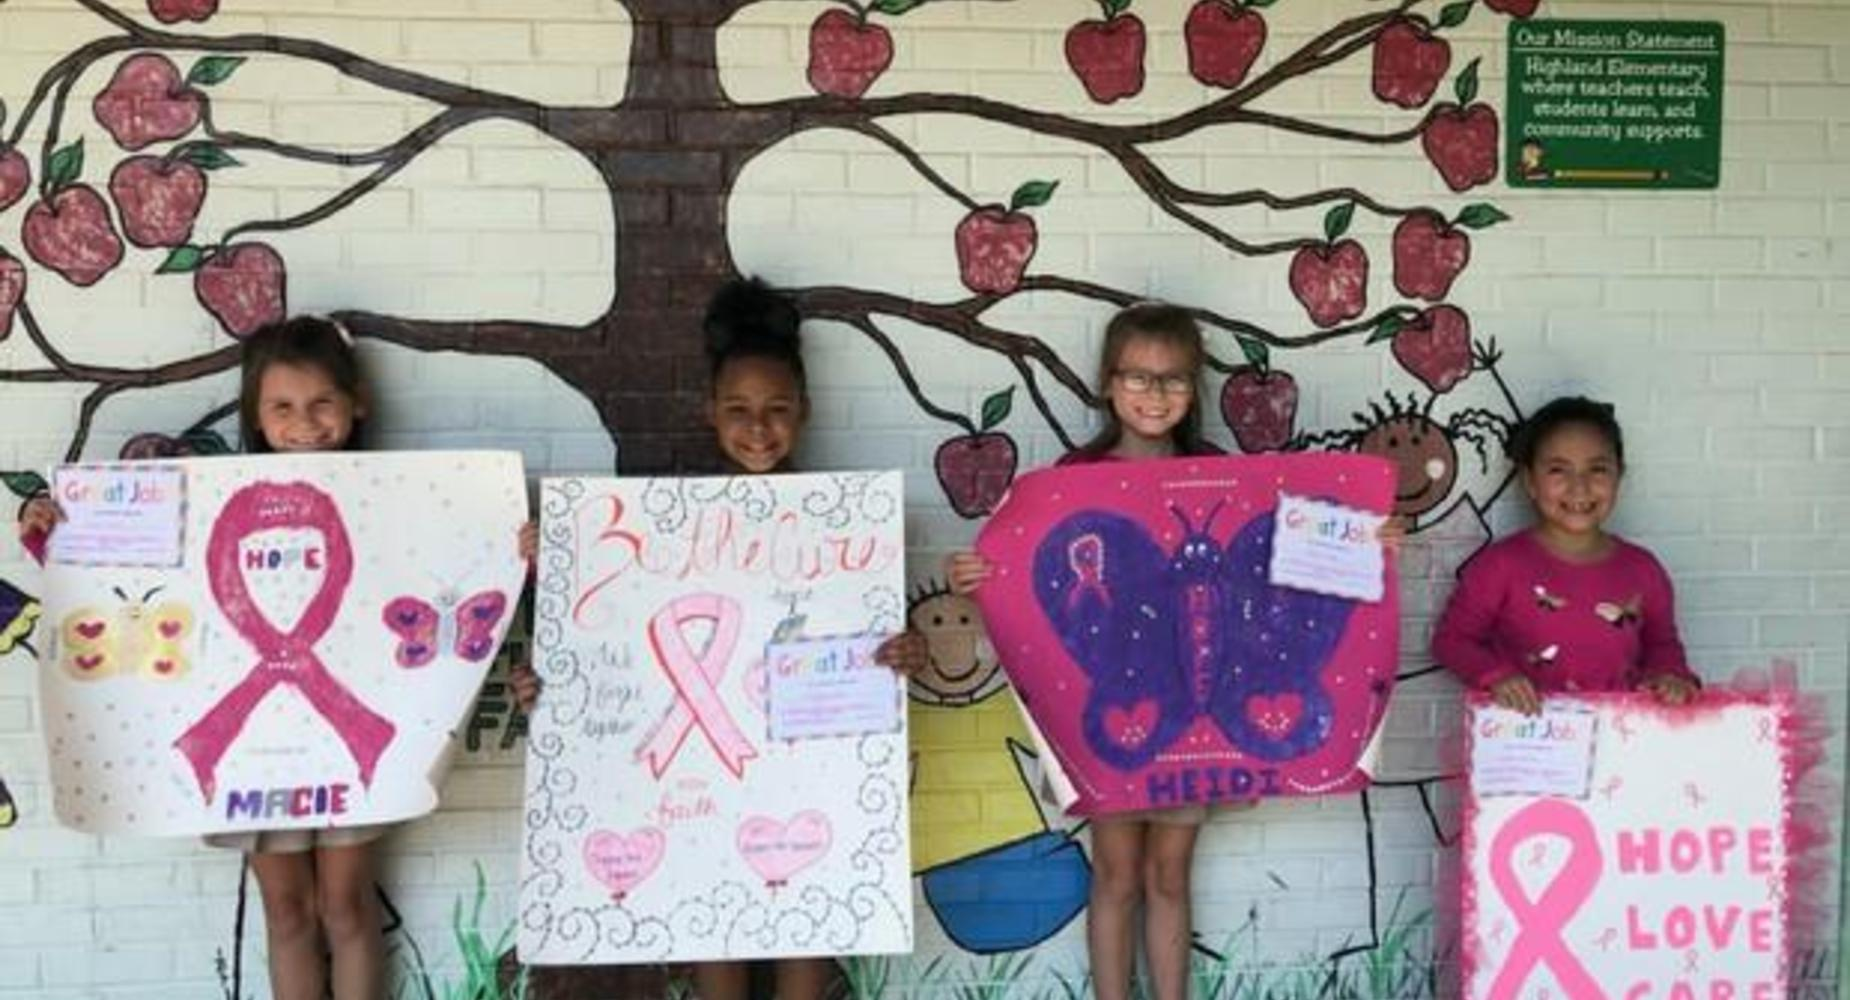 walk for the cure poster winners